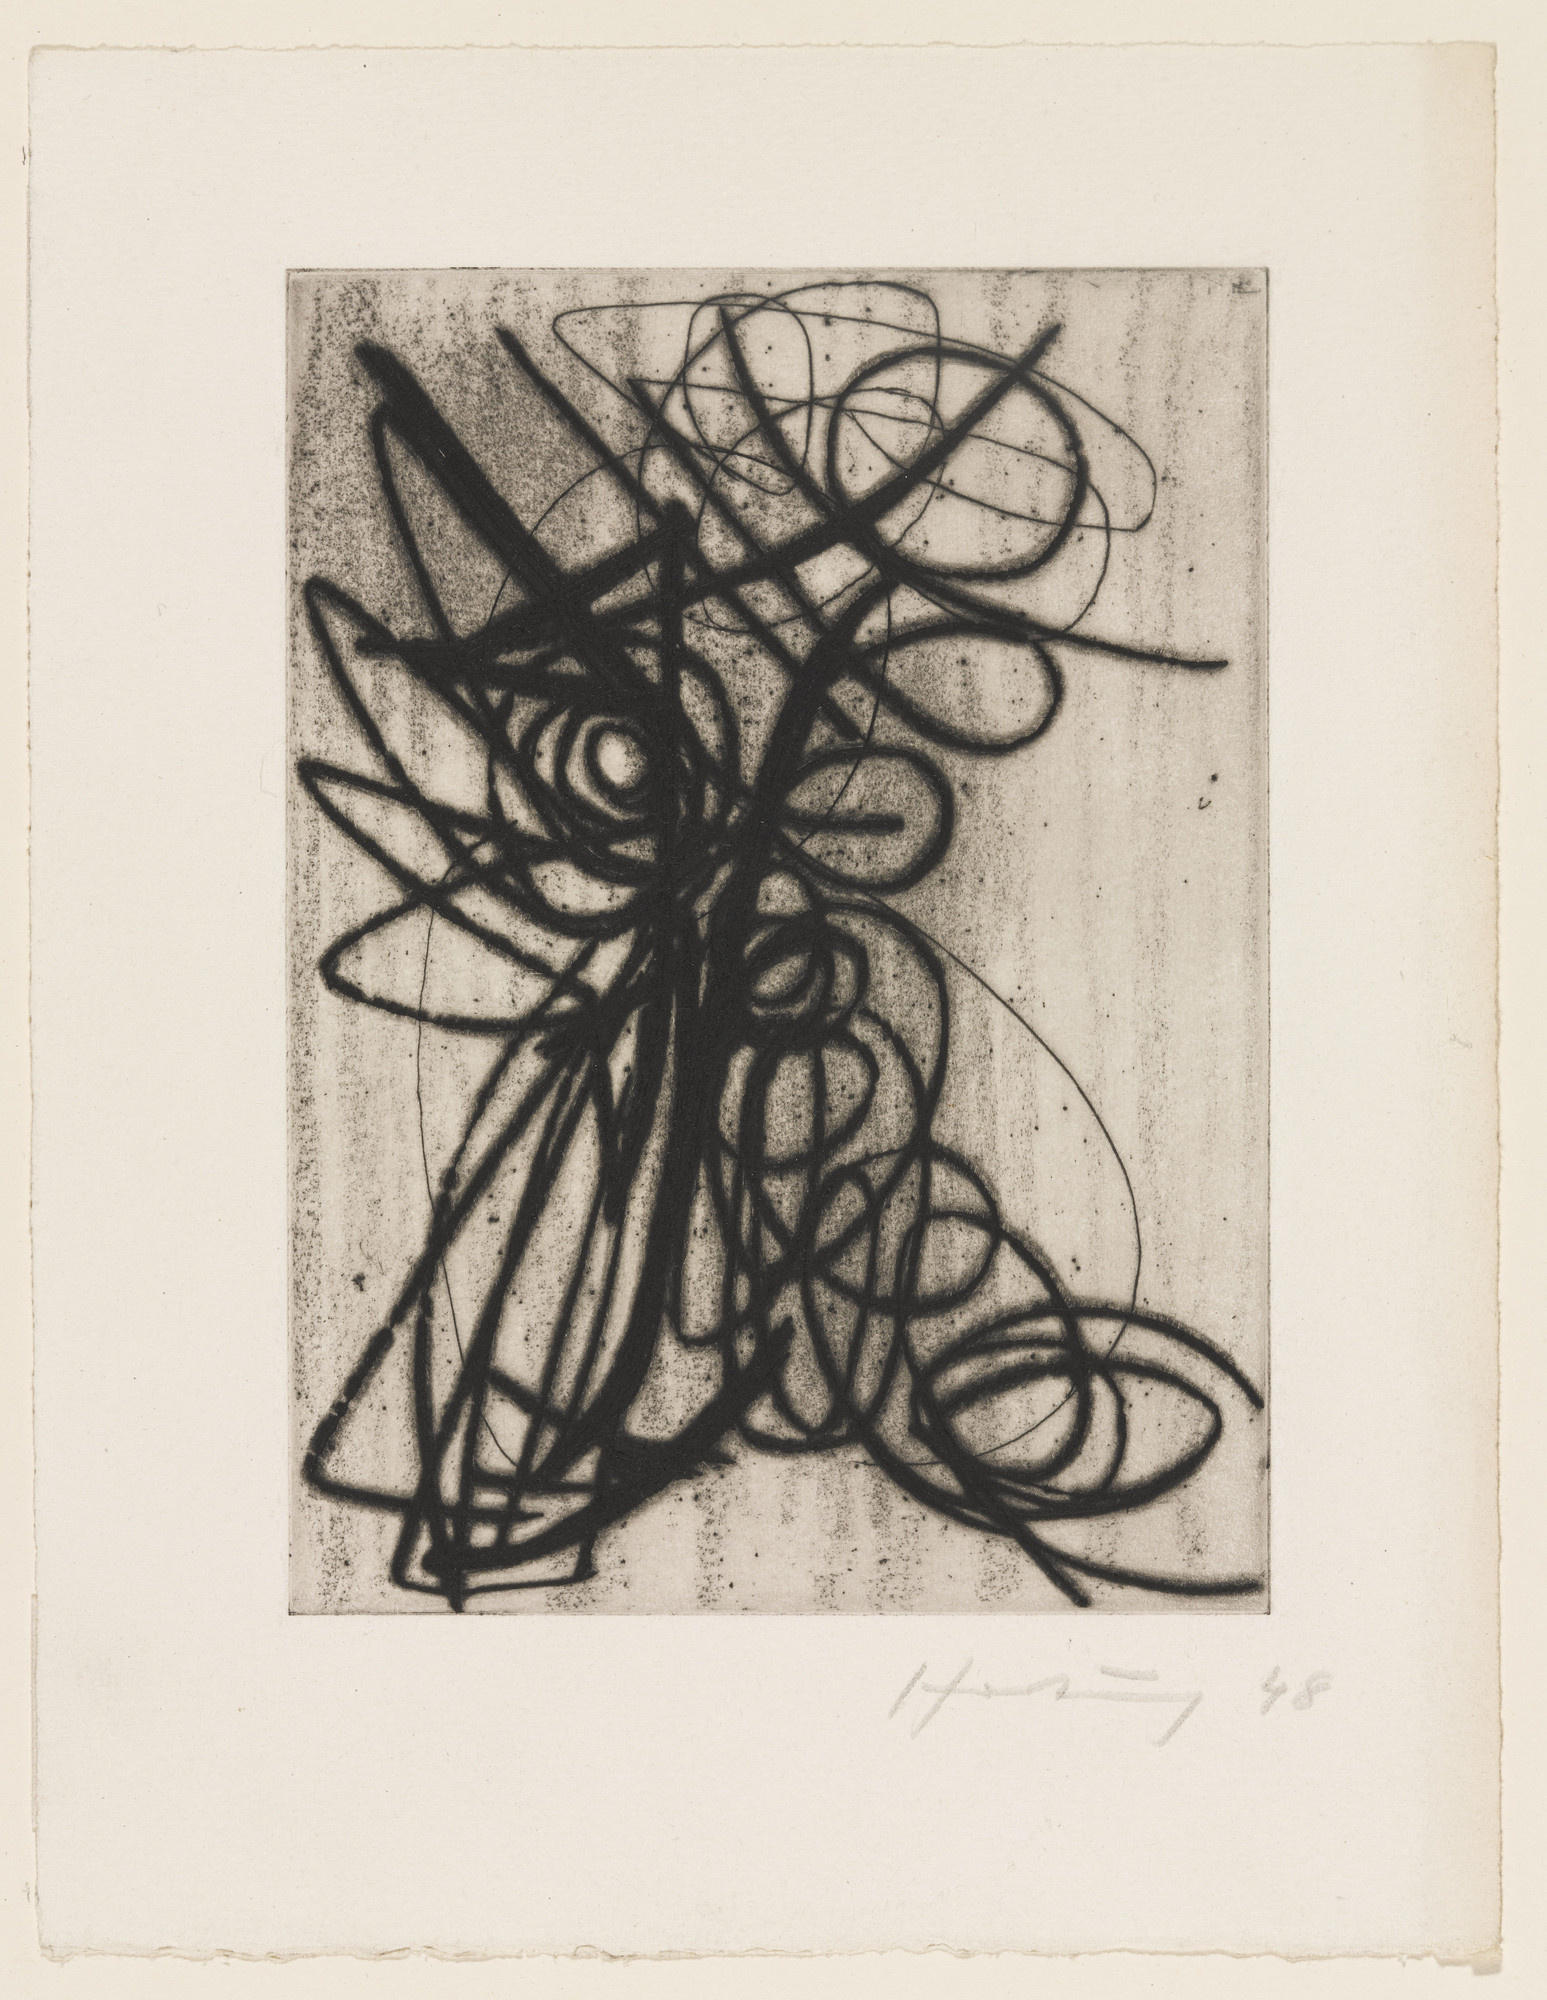 Hans Hartung. Composition. 1948